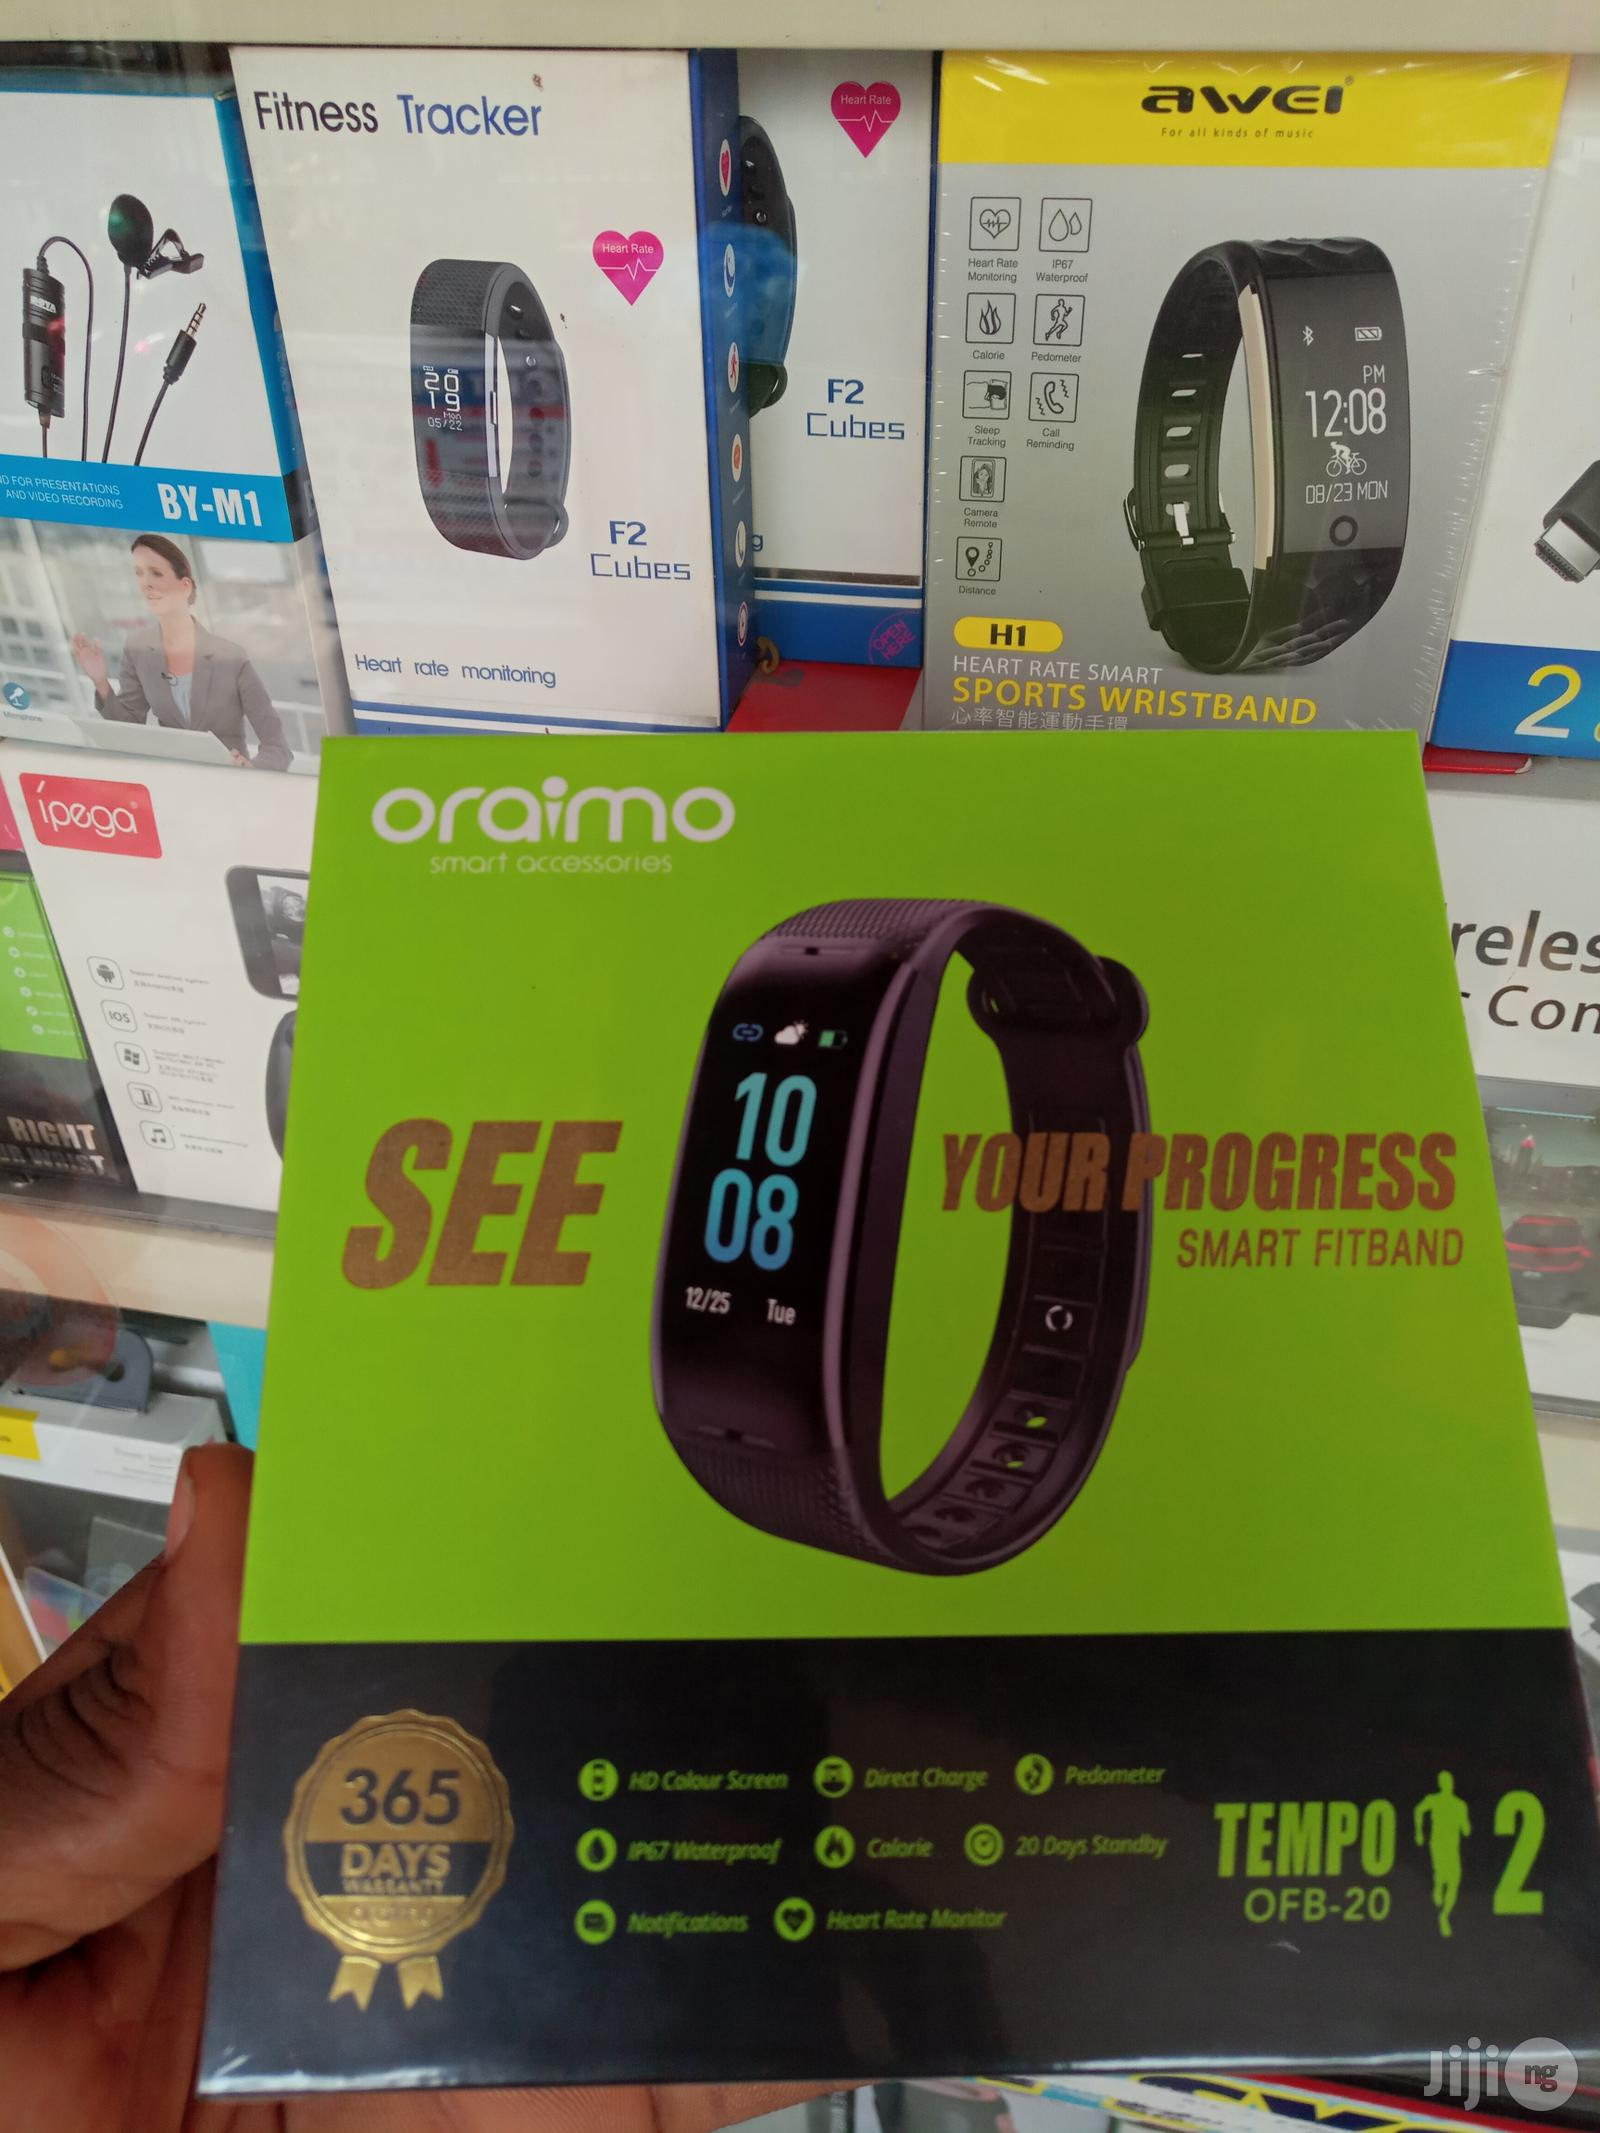 Oraimo Smart Watch Fit Band Tempo 2 OFB-20 | Smart Watches & Trackers for sale in Ikeja, Lagos State, Nigeria